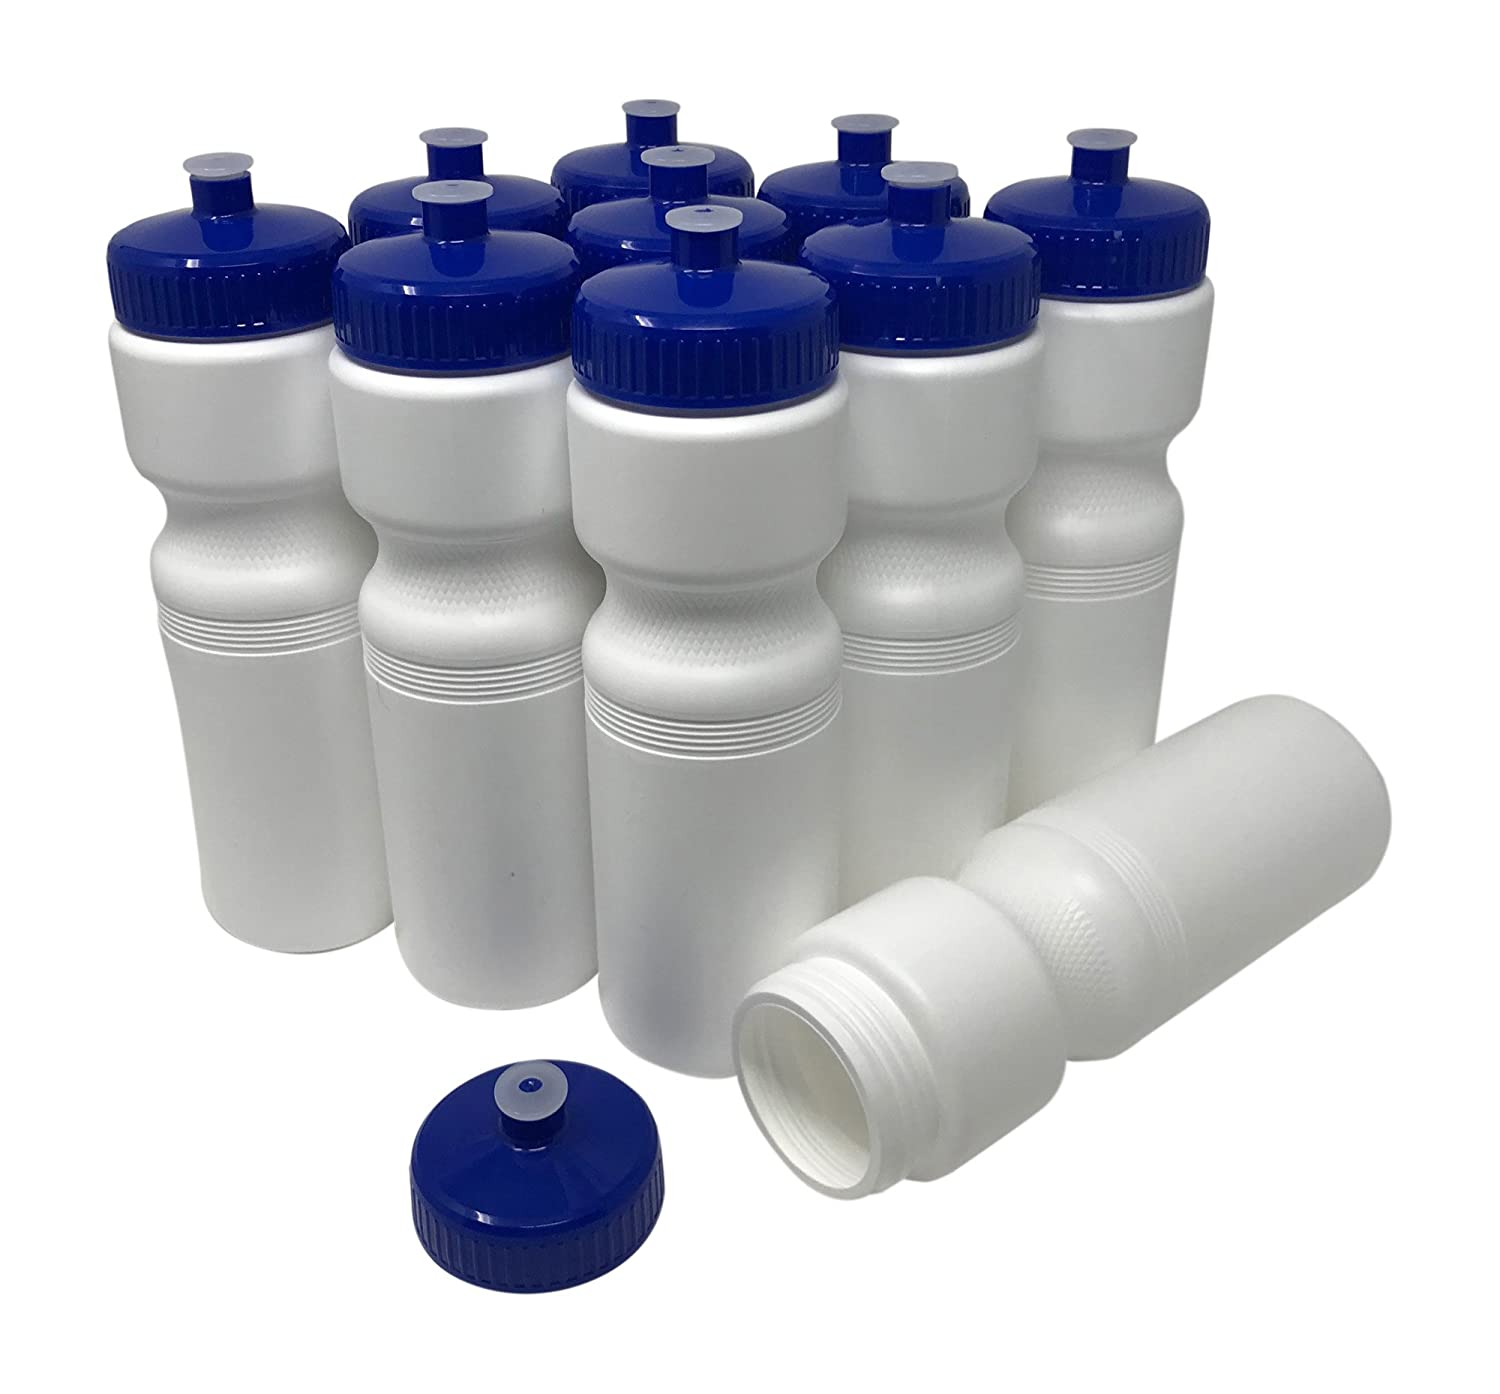 10 Pack Fundraises or Fitness Pull Top Leakproof Drink Spout CSBD 28oz Sports Water Bottles Reusable No BPA Plastic Blank DIY Customization for Business Branding